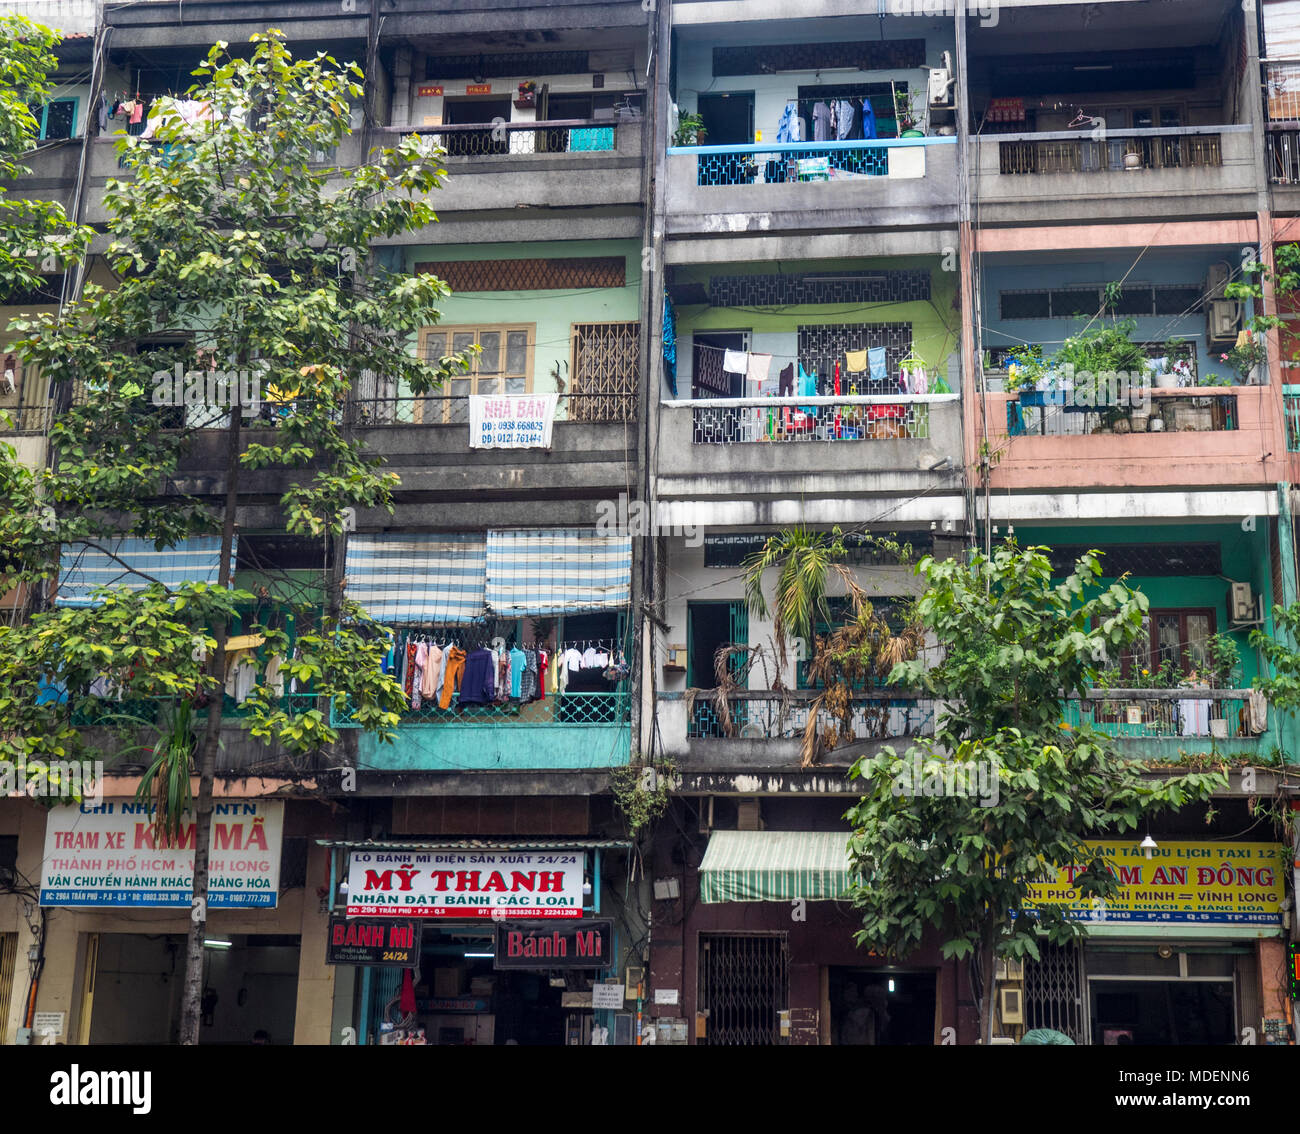 High density shophouse residential building in Ho Chi Minh City, Vietnam. - Stock Image